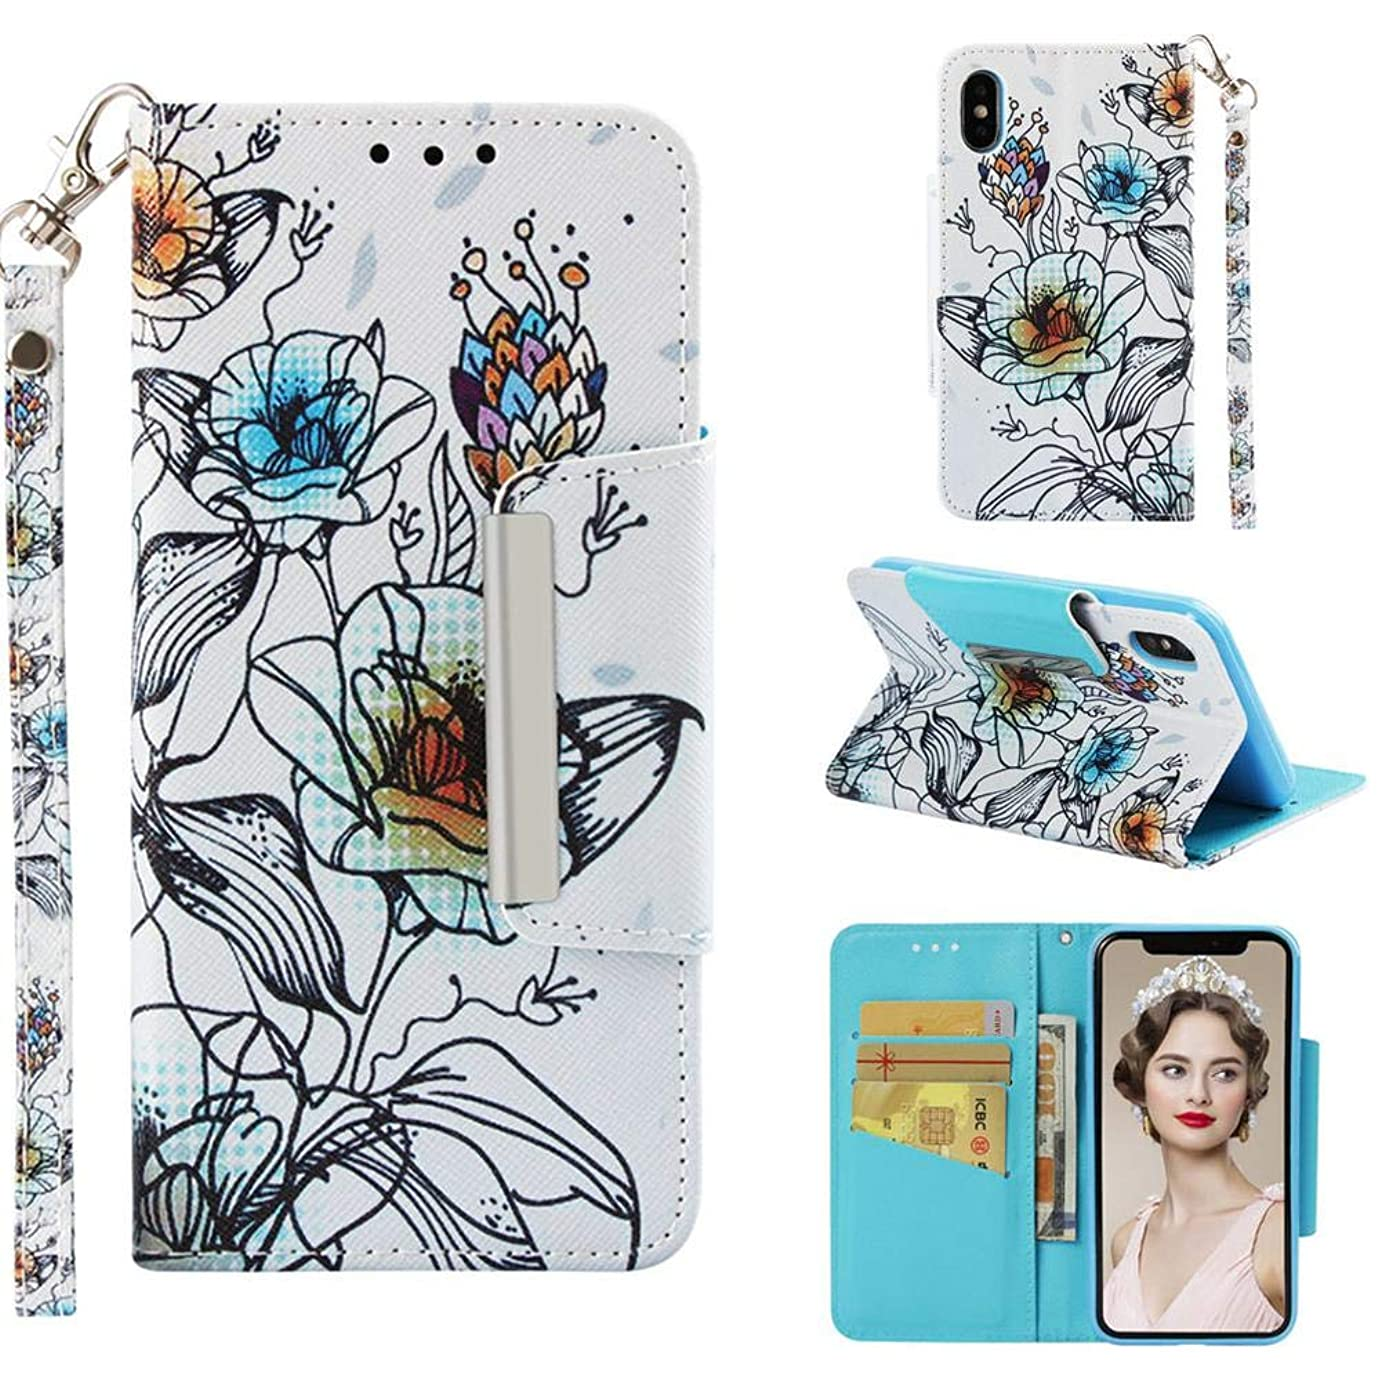 Case for iPhone Xs Max,3D Printing PU Leather Shockproof Inner TPU Bumper Slim Kickstand Card Holder with Wrist Strap & Magnetic Closure Compatible with Apple iPhone Xs Max -Lily